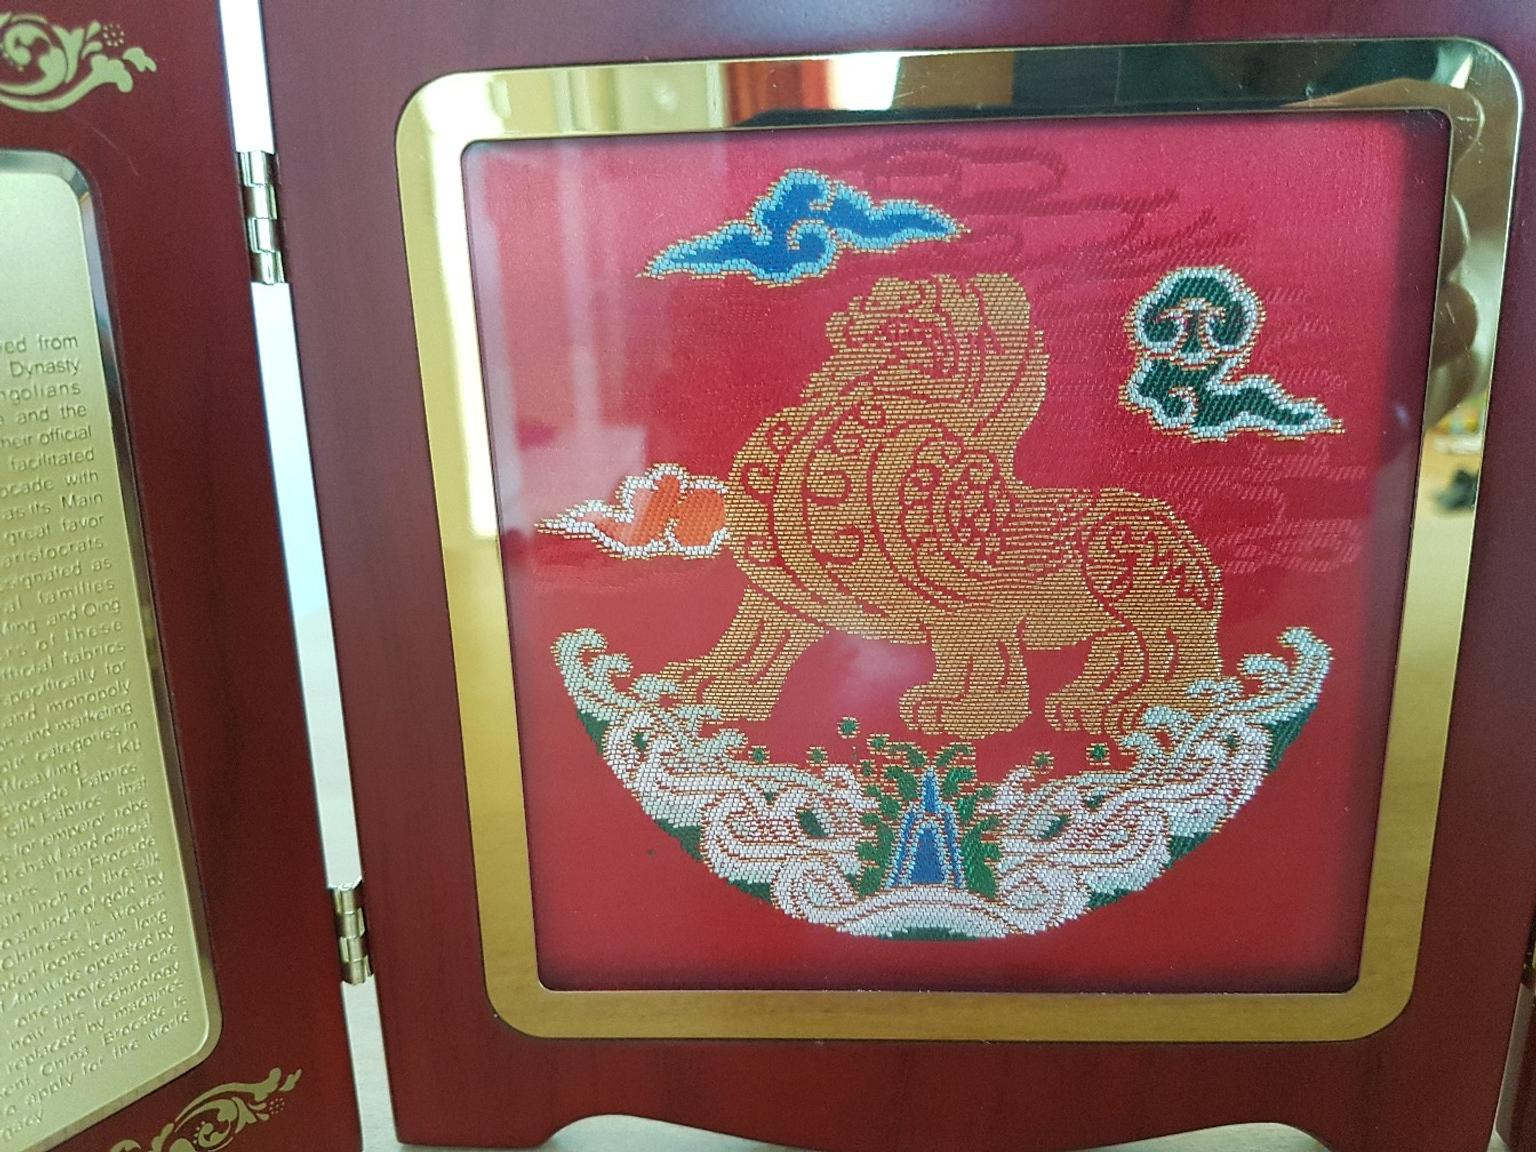 China Hochzeitsschrank Yun Brocade Of China Brokatstoff Aus China In 6020 Innsbruck For 20 00 For Sale Shpock